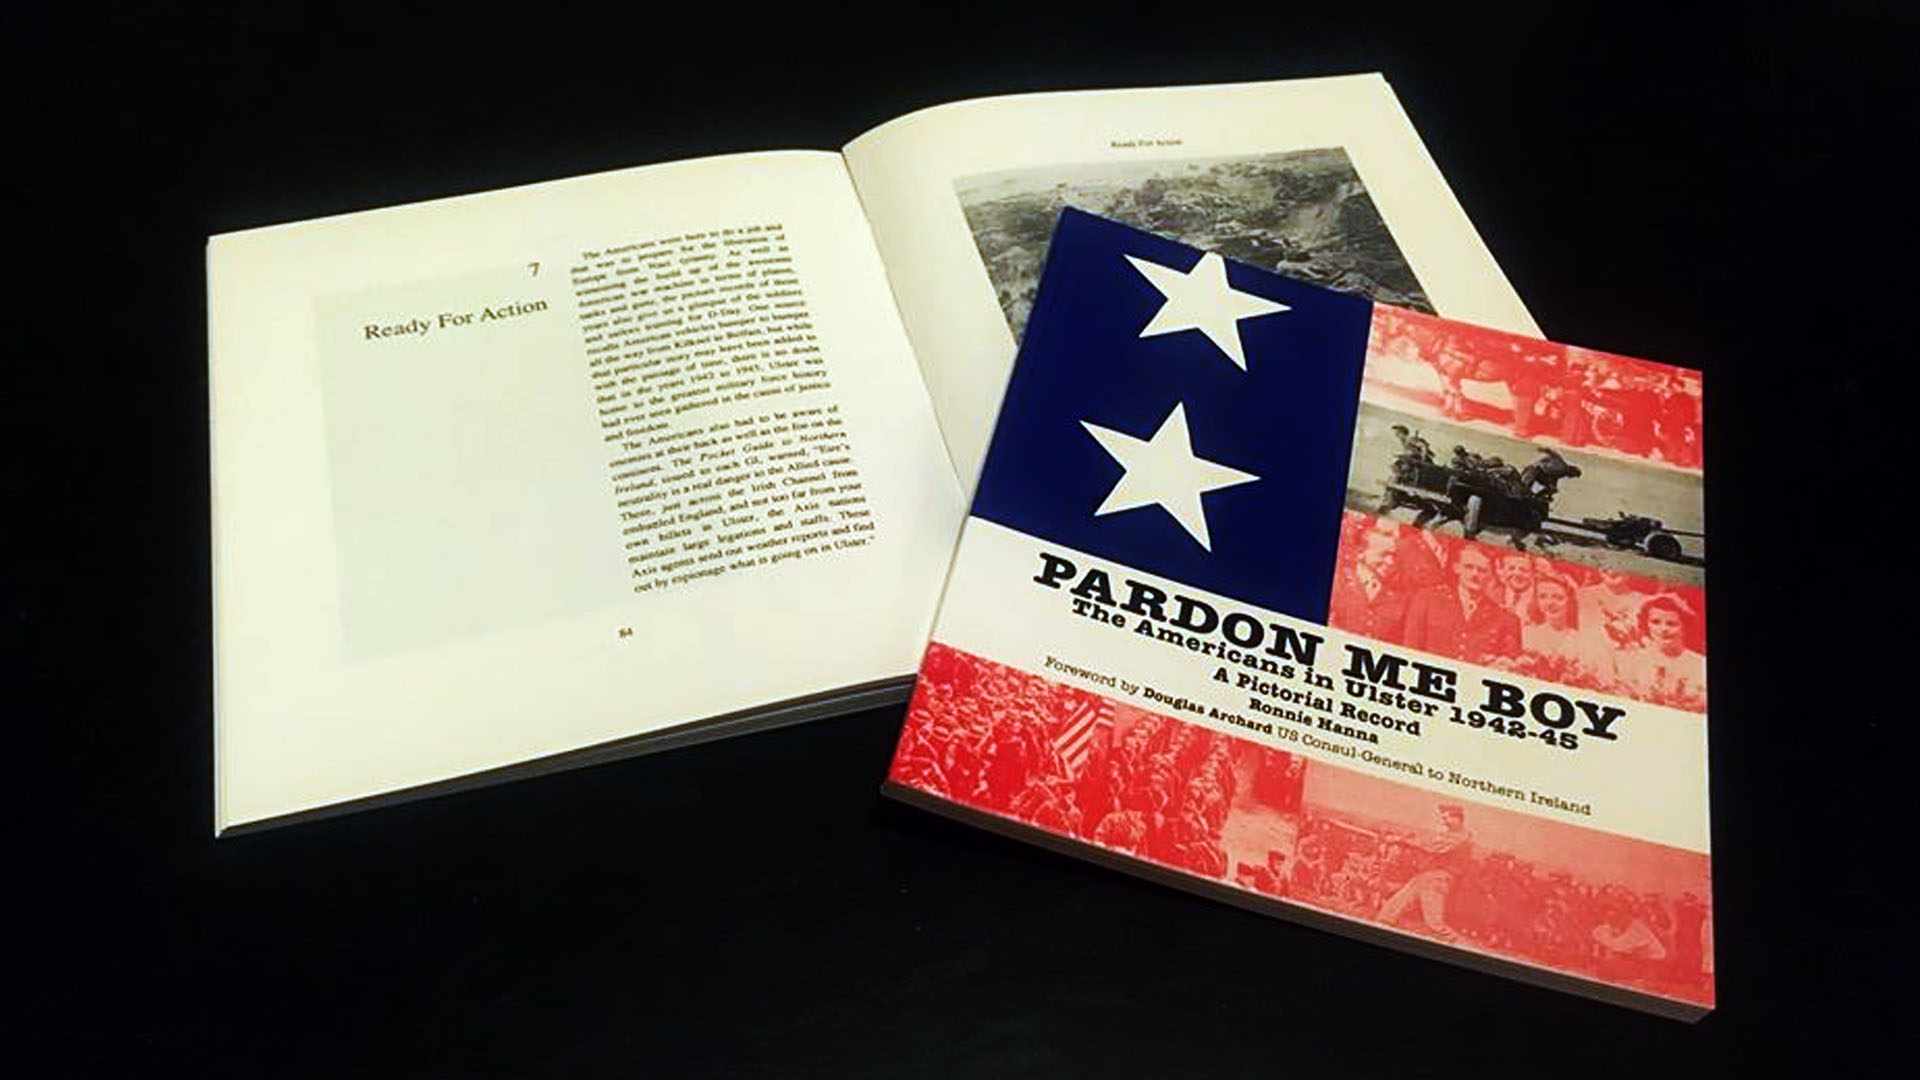 Pardon Me Boy: The Americans in Ulster 1934-45